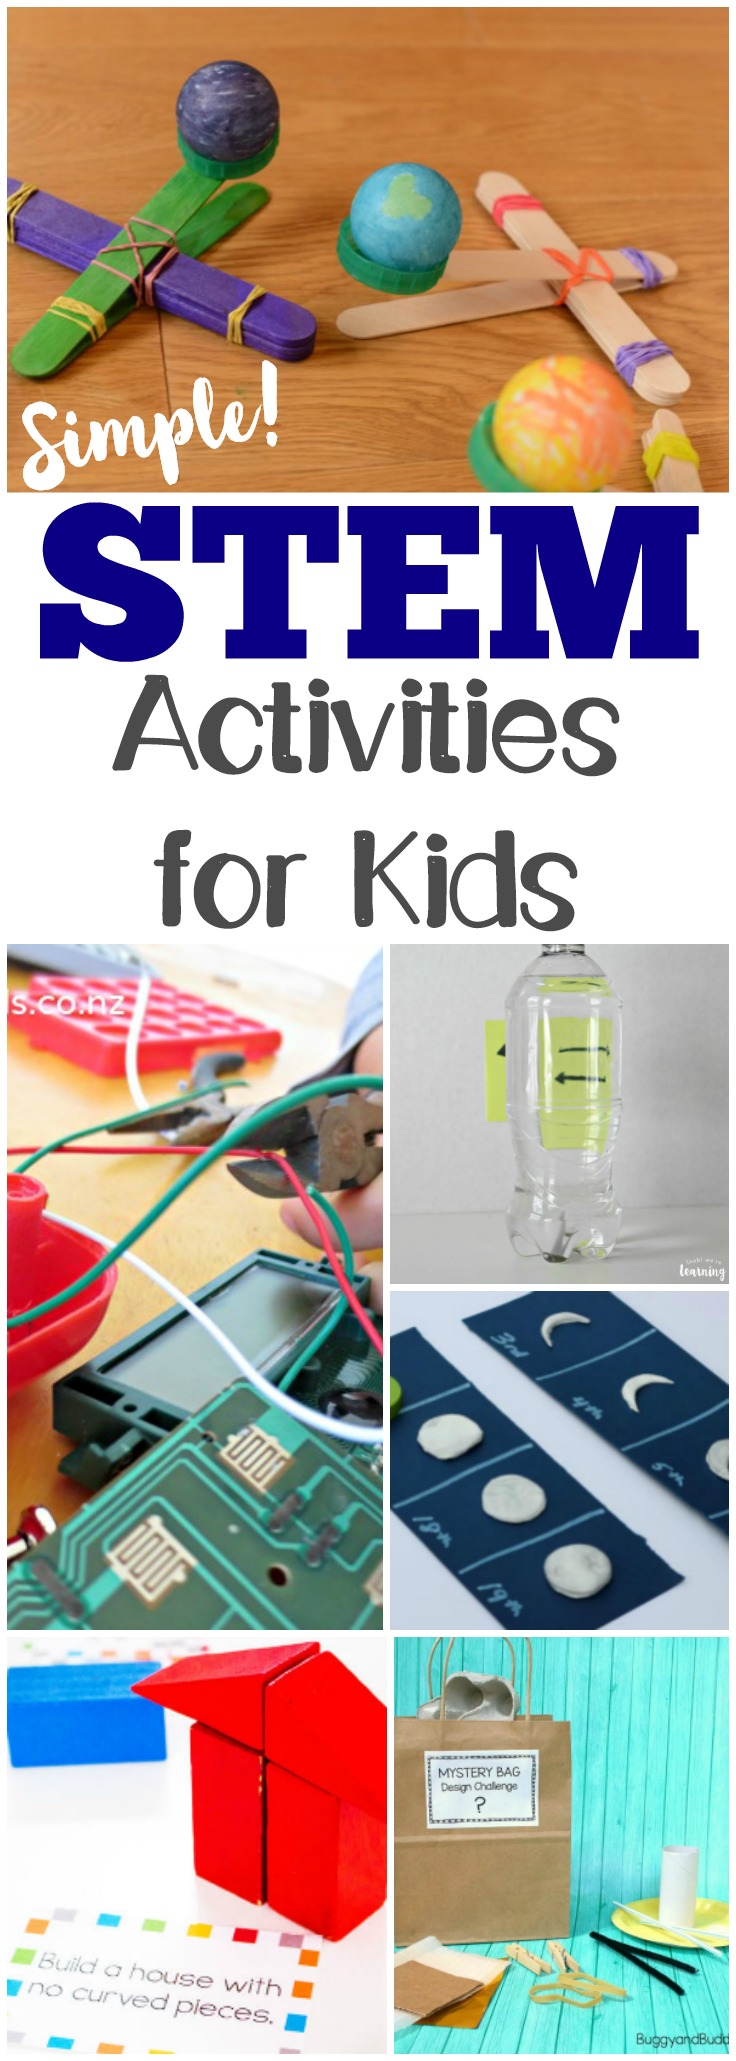 These easy STEM activities for kids are great for adding some hands-on fun to learning science, technology, engineering, and math!